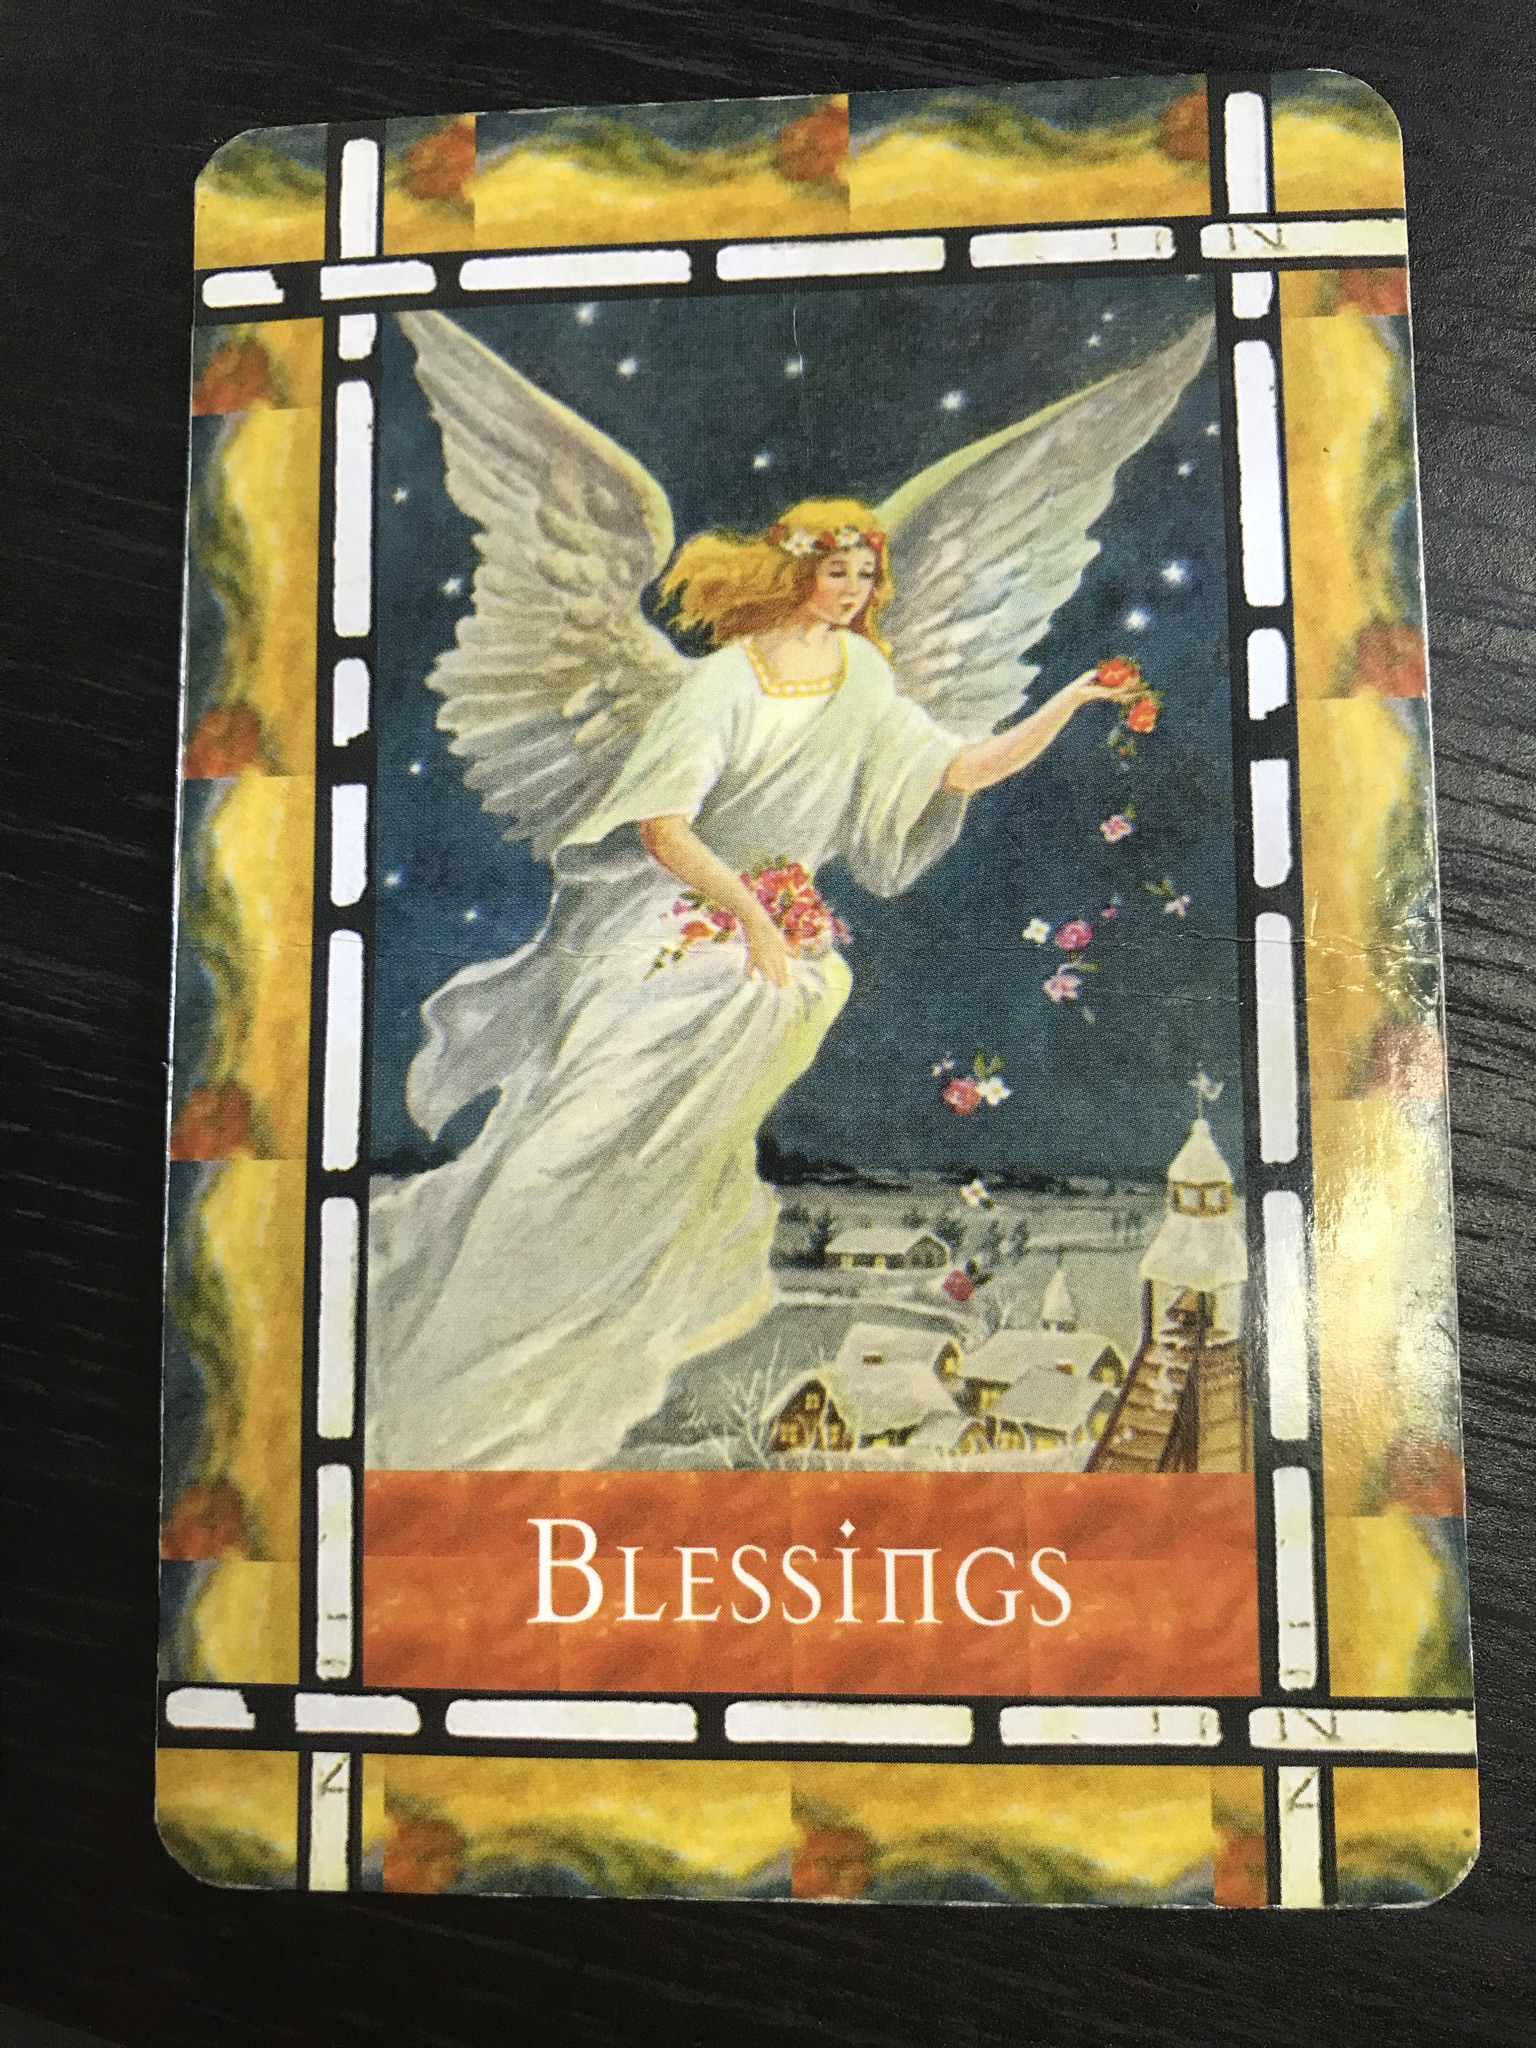 Weekly reading 18th – 24th January 2021 Card: Blessings